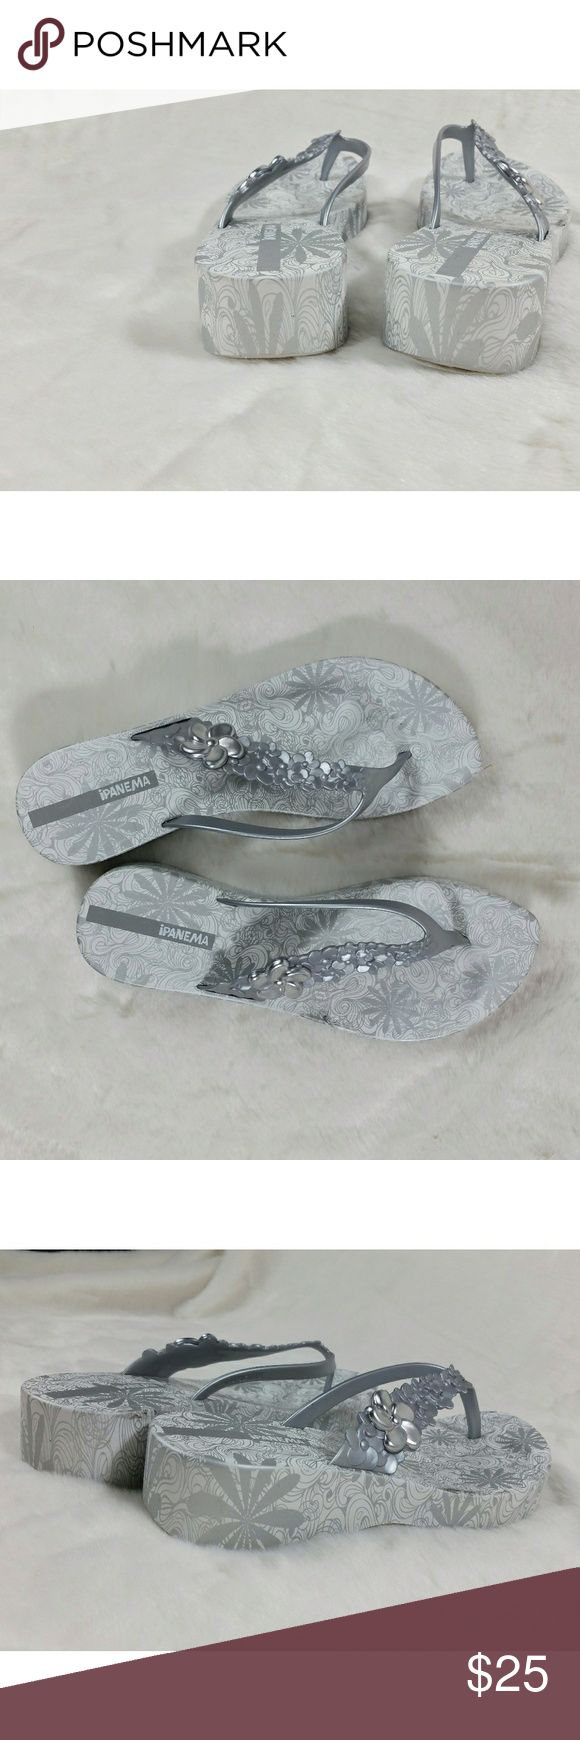 Ipanema Gray White Wedge Flip Flops Slippers 9 Very substantial slippers.  Feels like rubber. Heavy. There are air vents (holes) in the soles for comfort. Pre-owned in excellent condition. Island vibe with the plumeria strap design. SIZE 9 Ipanema Shoes Slippers